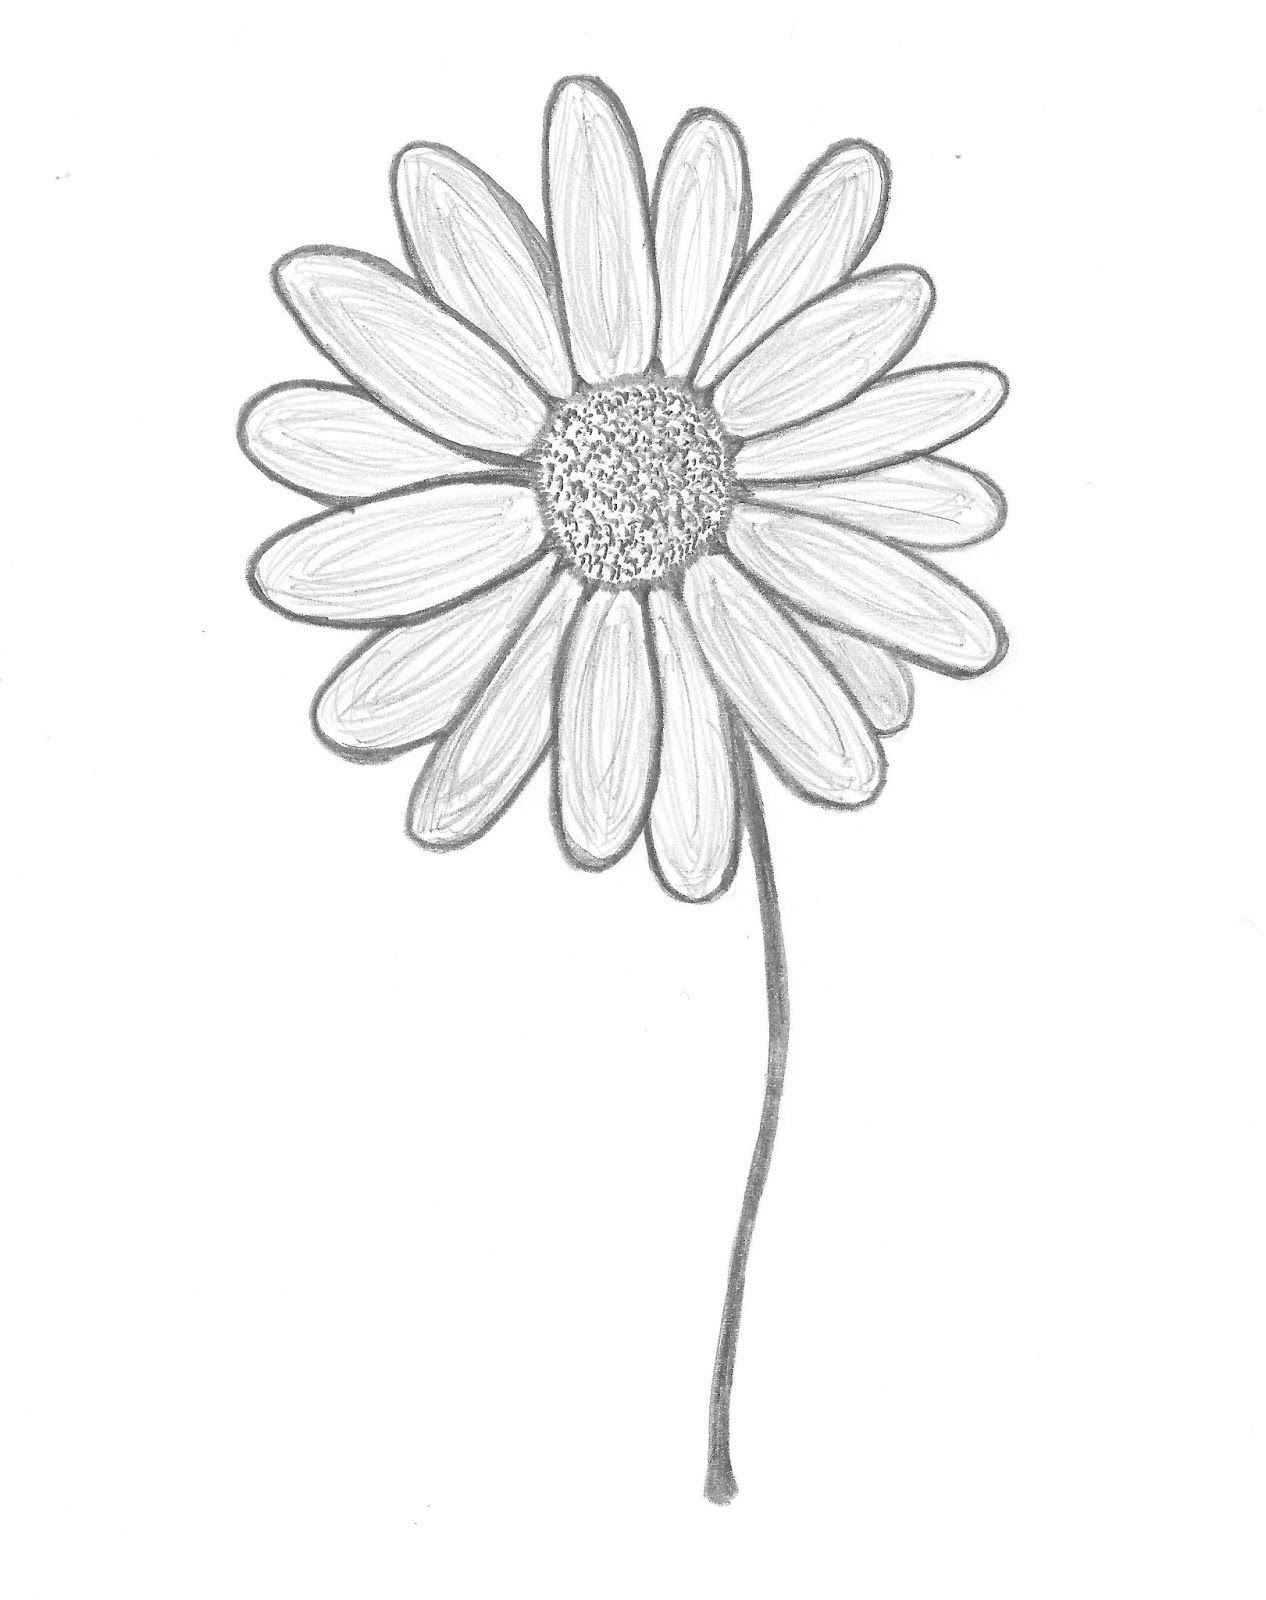 Drawn daisy clipart clipart stock Daisy Drawing Outline at PaintingValley.com | Explore collection of ... clipart stock